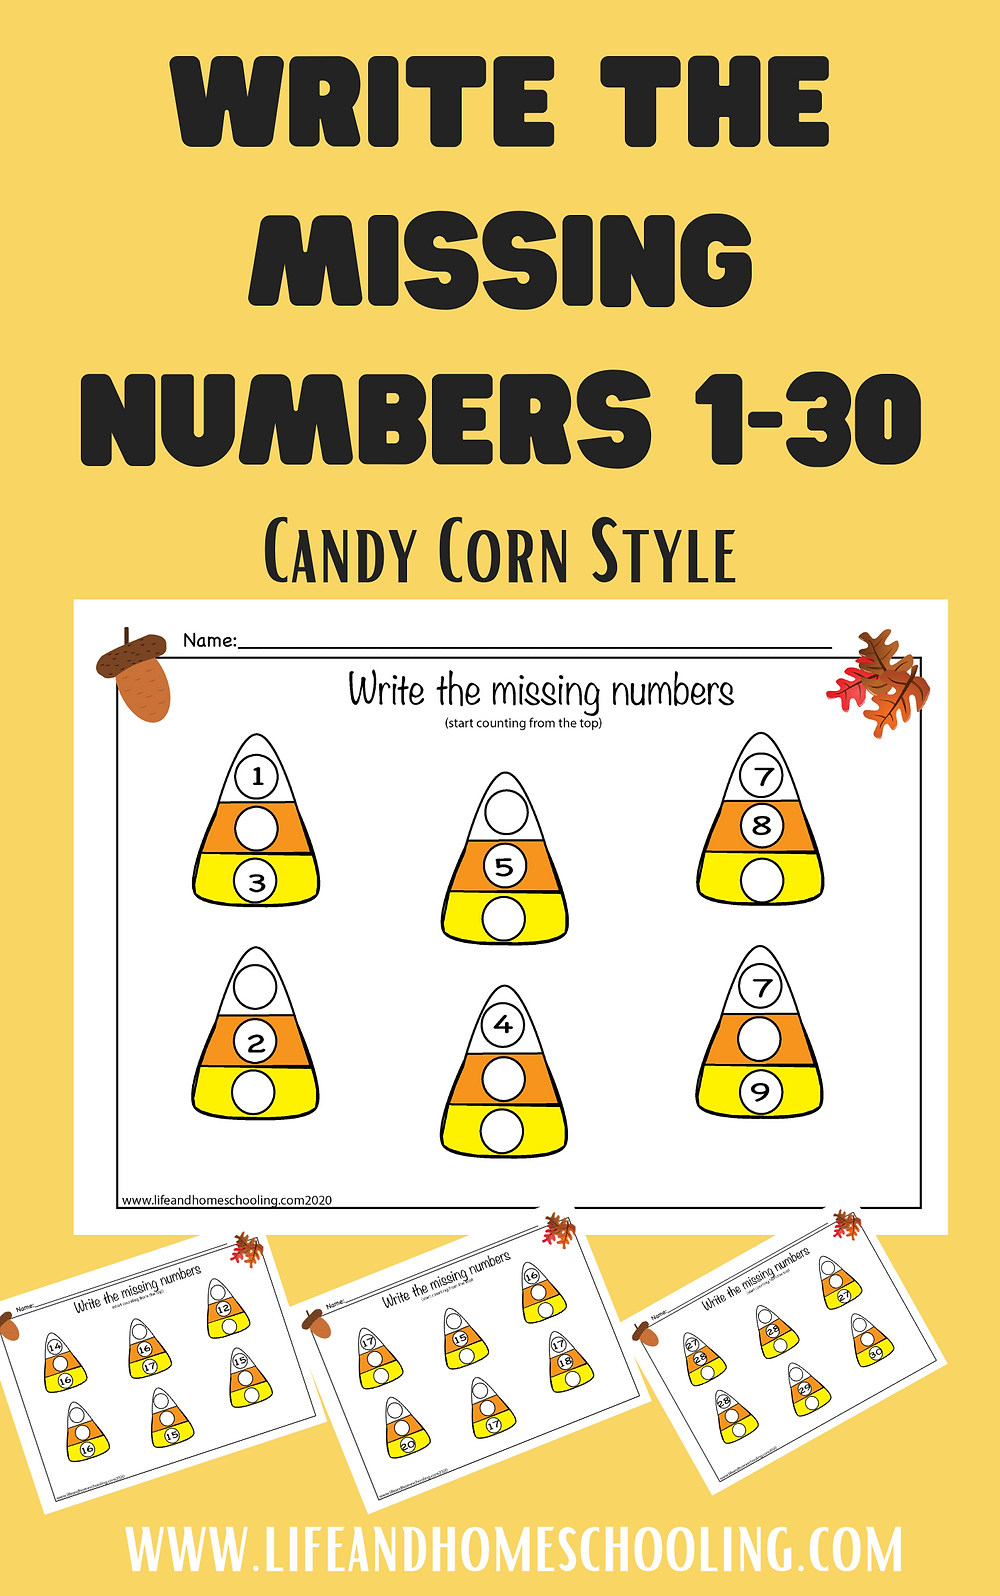 Write the missing numbers printable activity worksheets / Life and Homeschooling